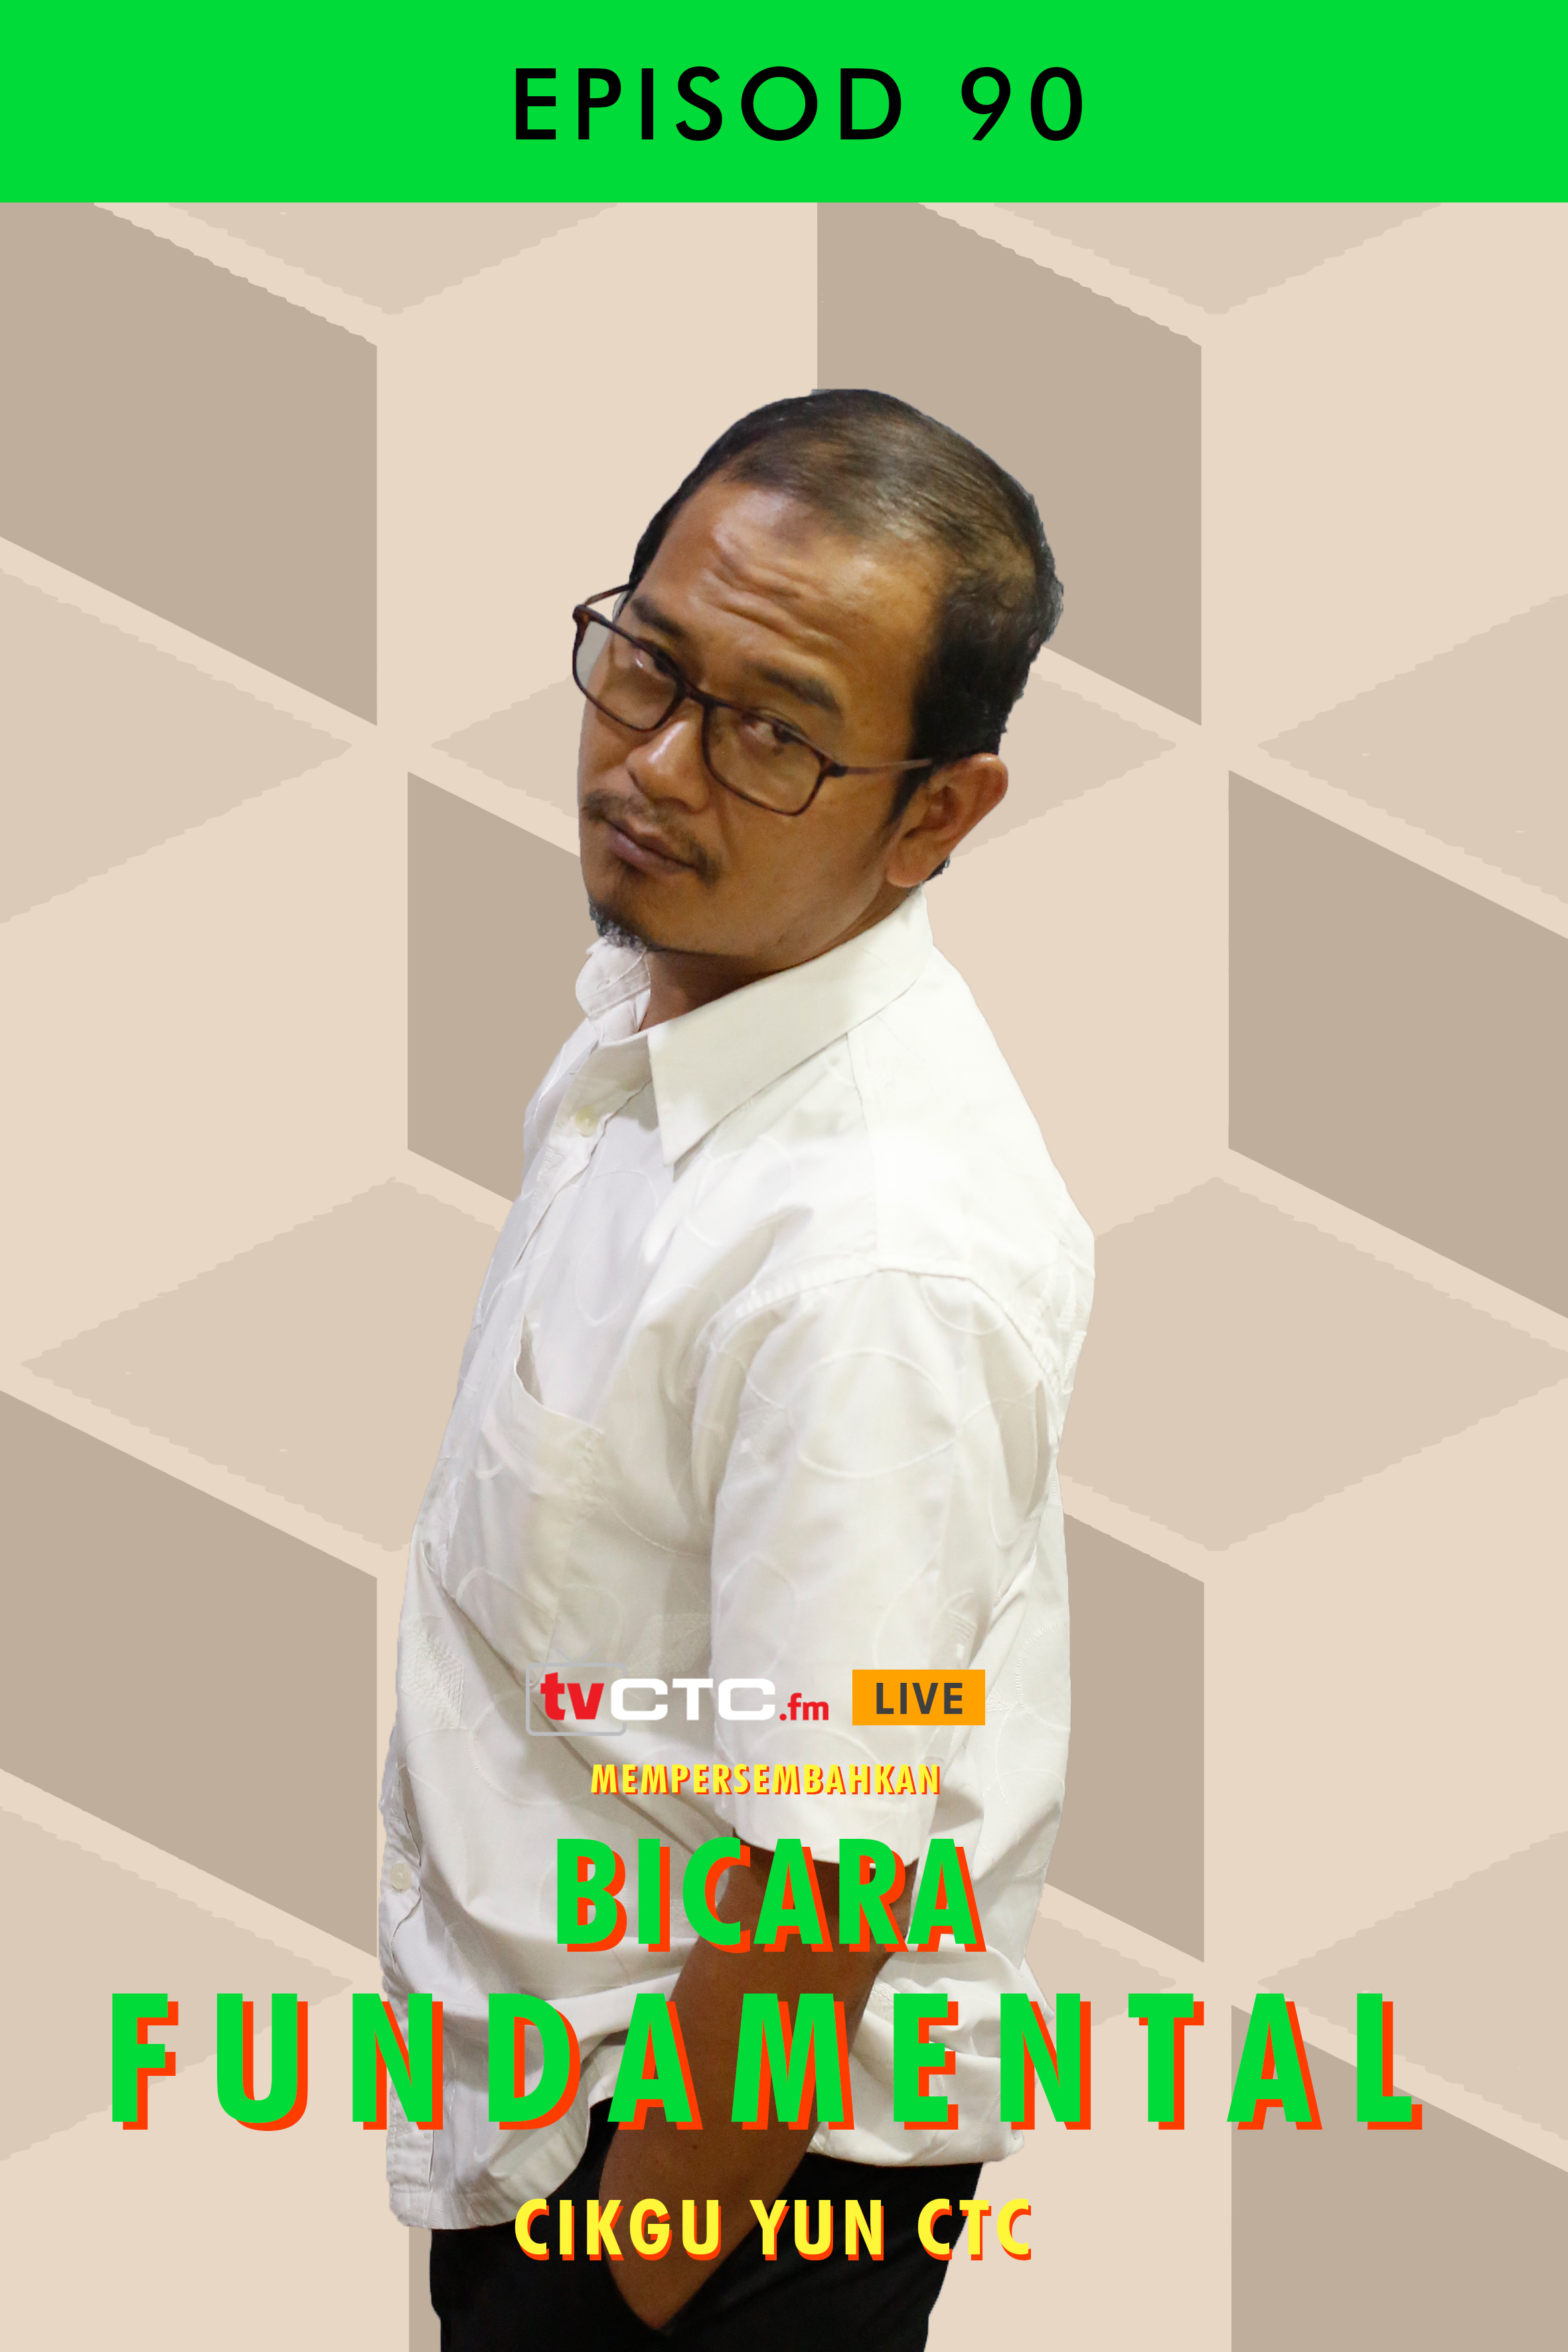 BICARA FUNDAMENTAL : Fundamental (Episod 90)